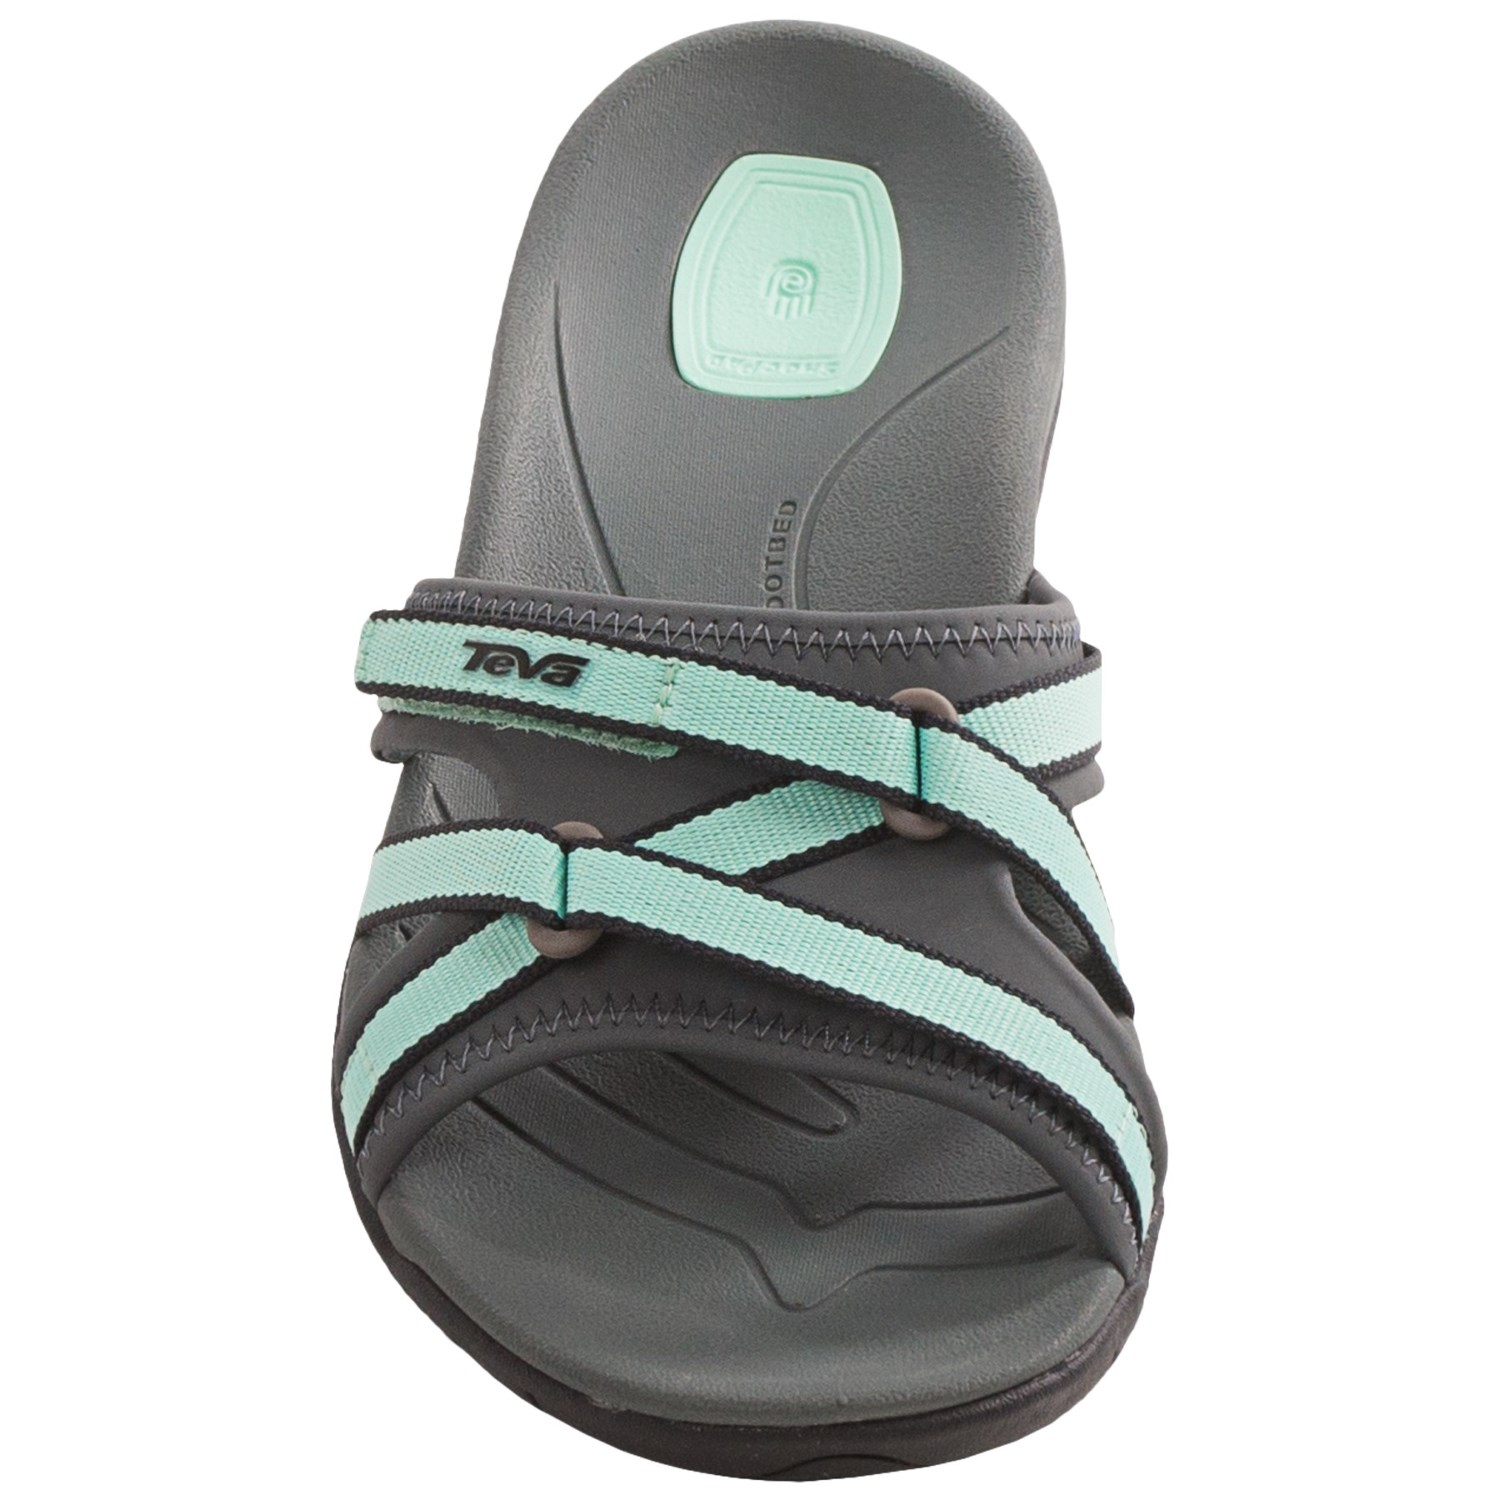 Teva Tirra Slide Sandals For Women Save 58